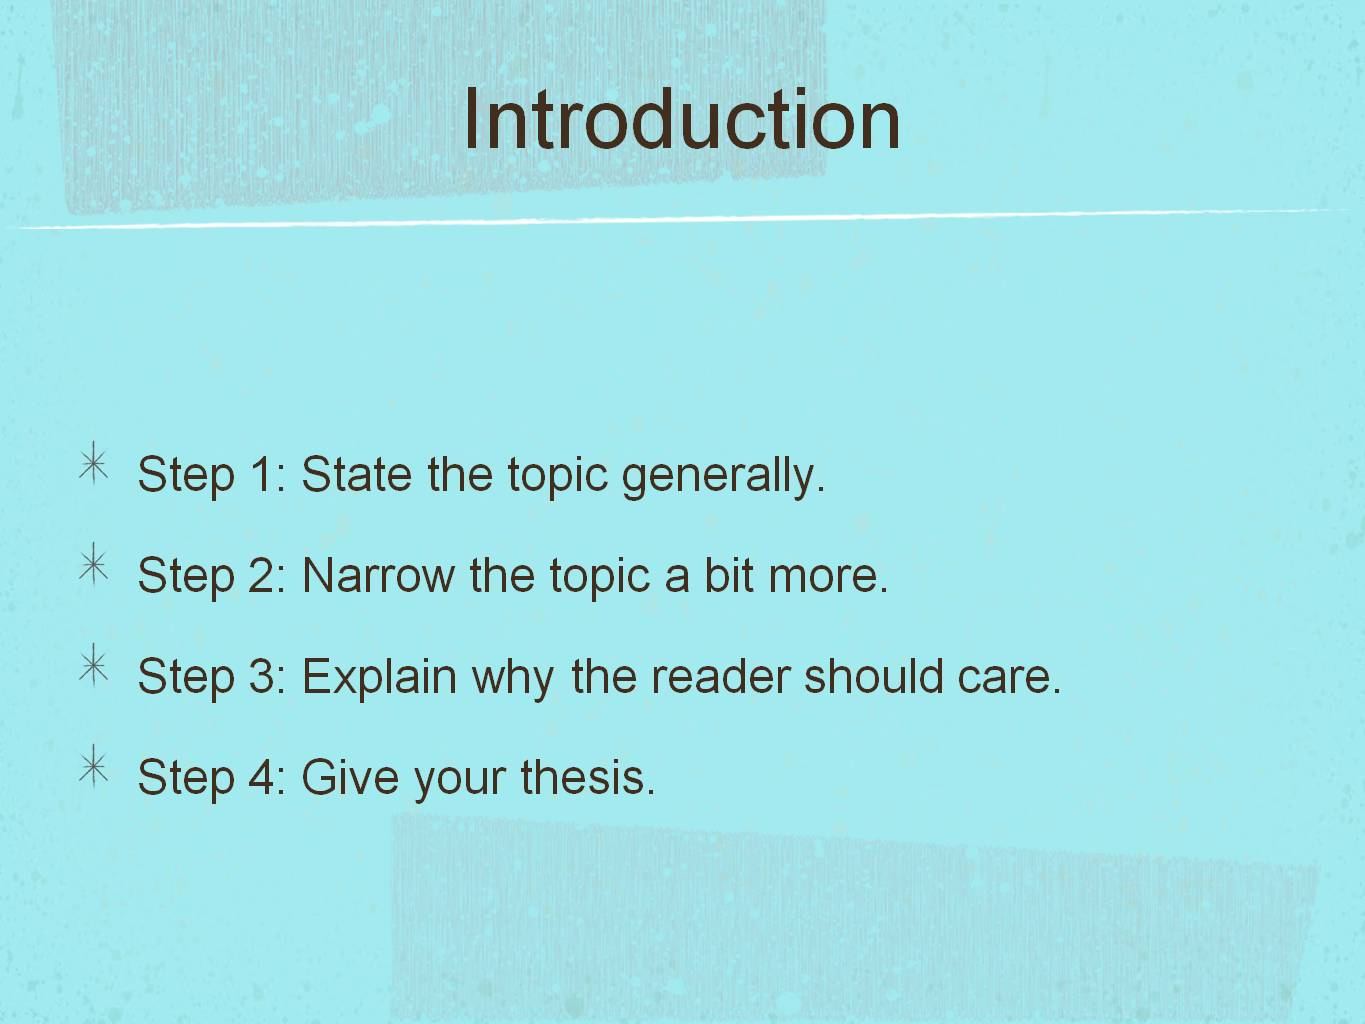 teaching five paragraph essay esl Essay writing for standardized tests: tips for writing a five paragraph essay most, if not all, high school and college standardized tests include a writing portion students are provided a writing prompt and must then write an essay on the topic.